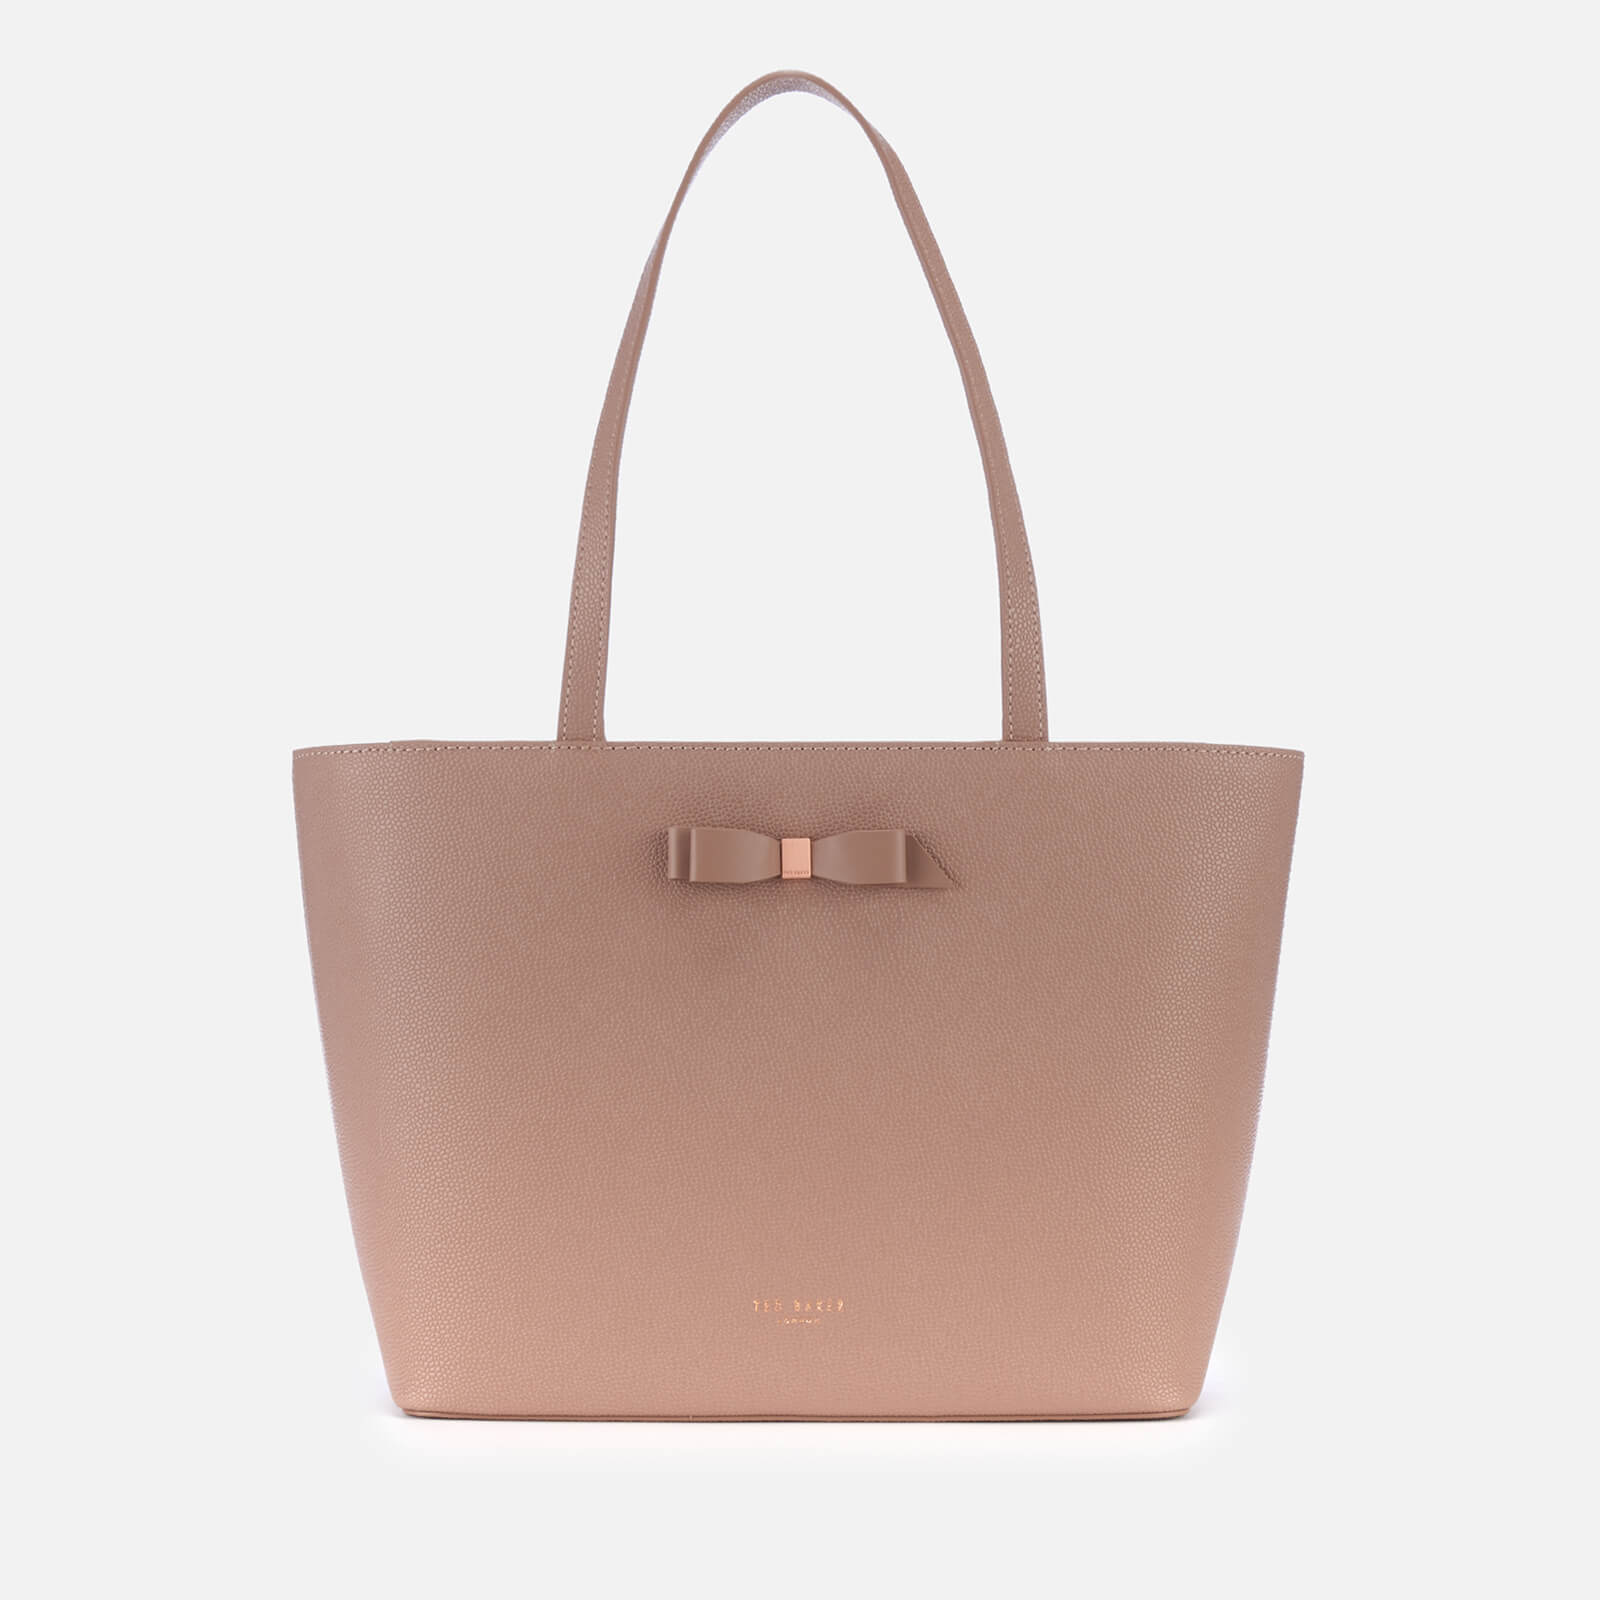 27a534993bf Ted Baker Women's Jjesica Bow Detail Shopper Bag - Taupe Clothing |  TheHut.com